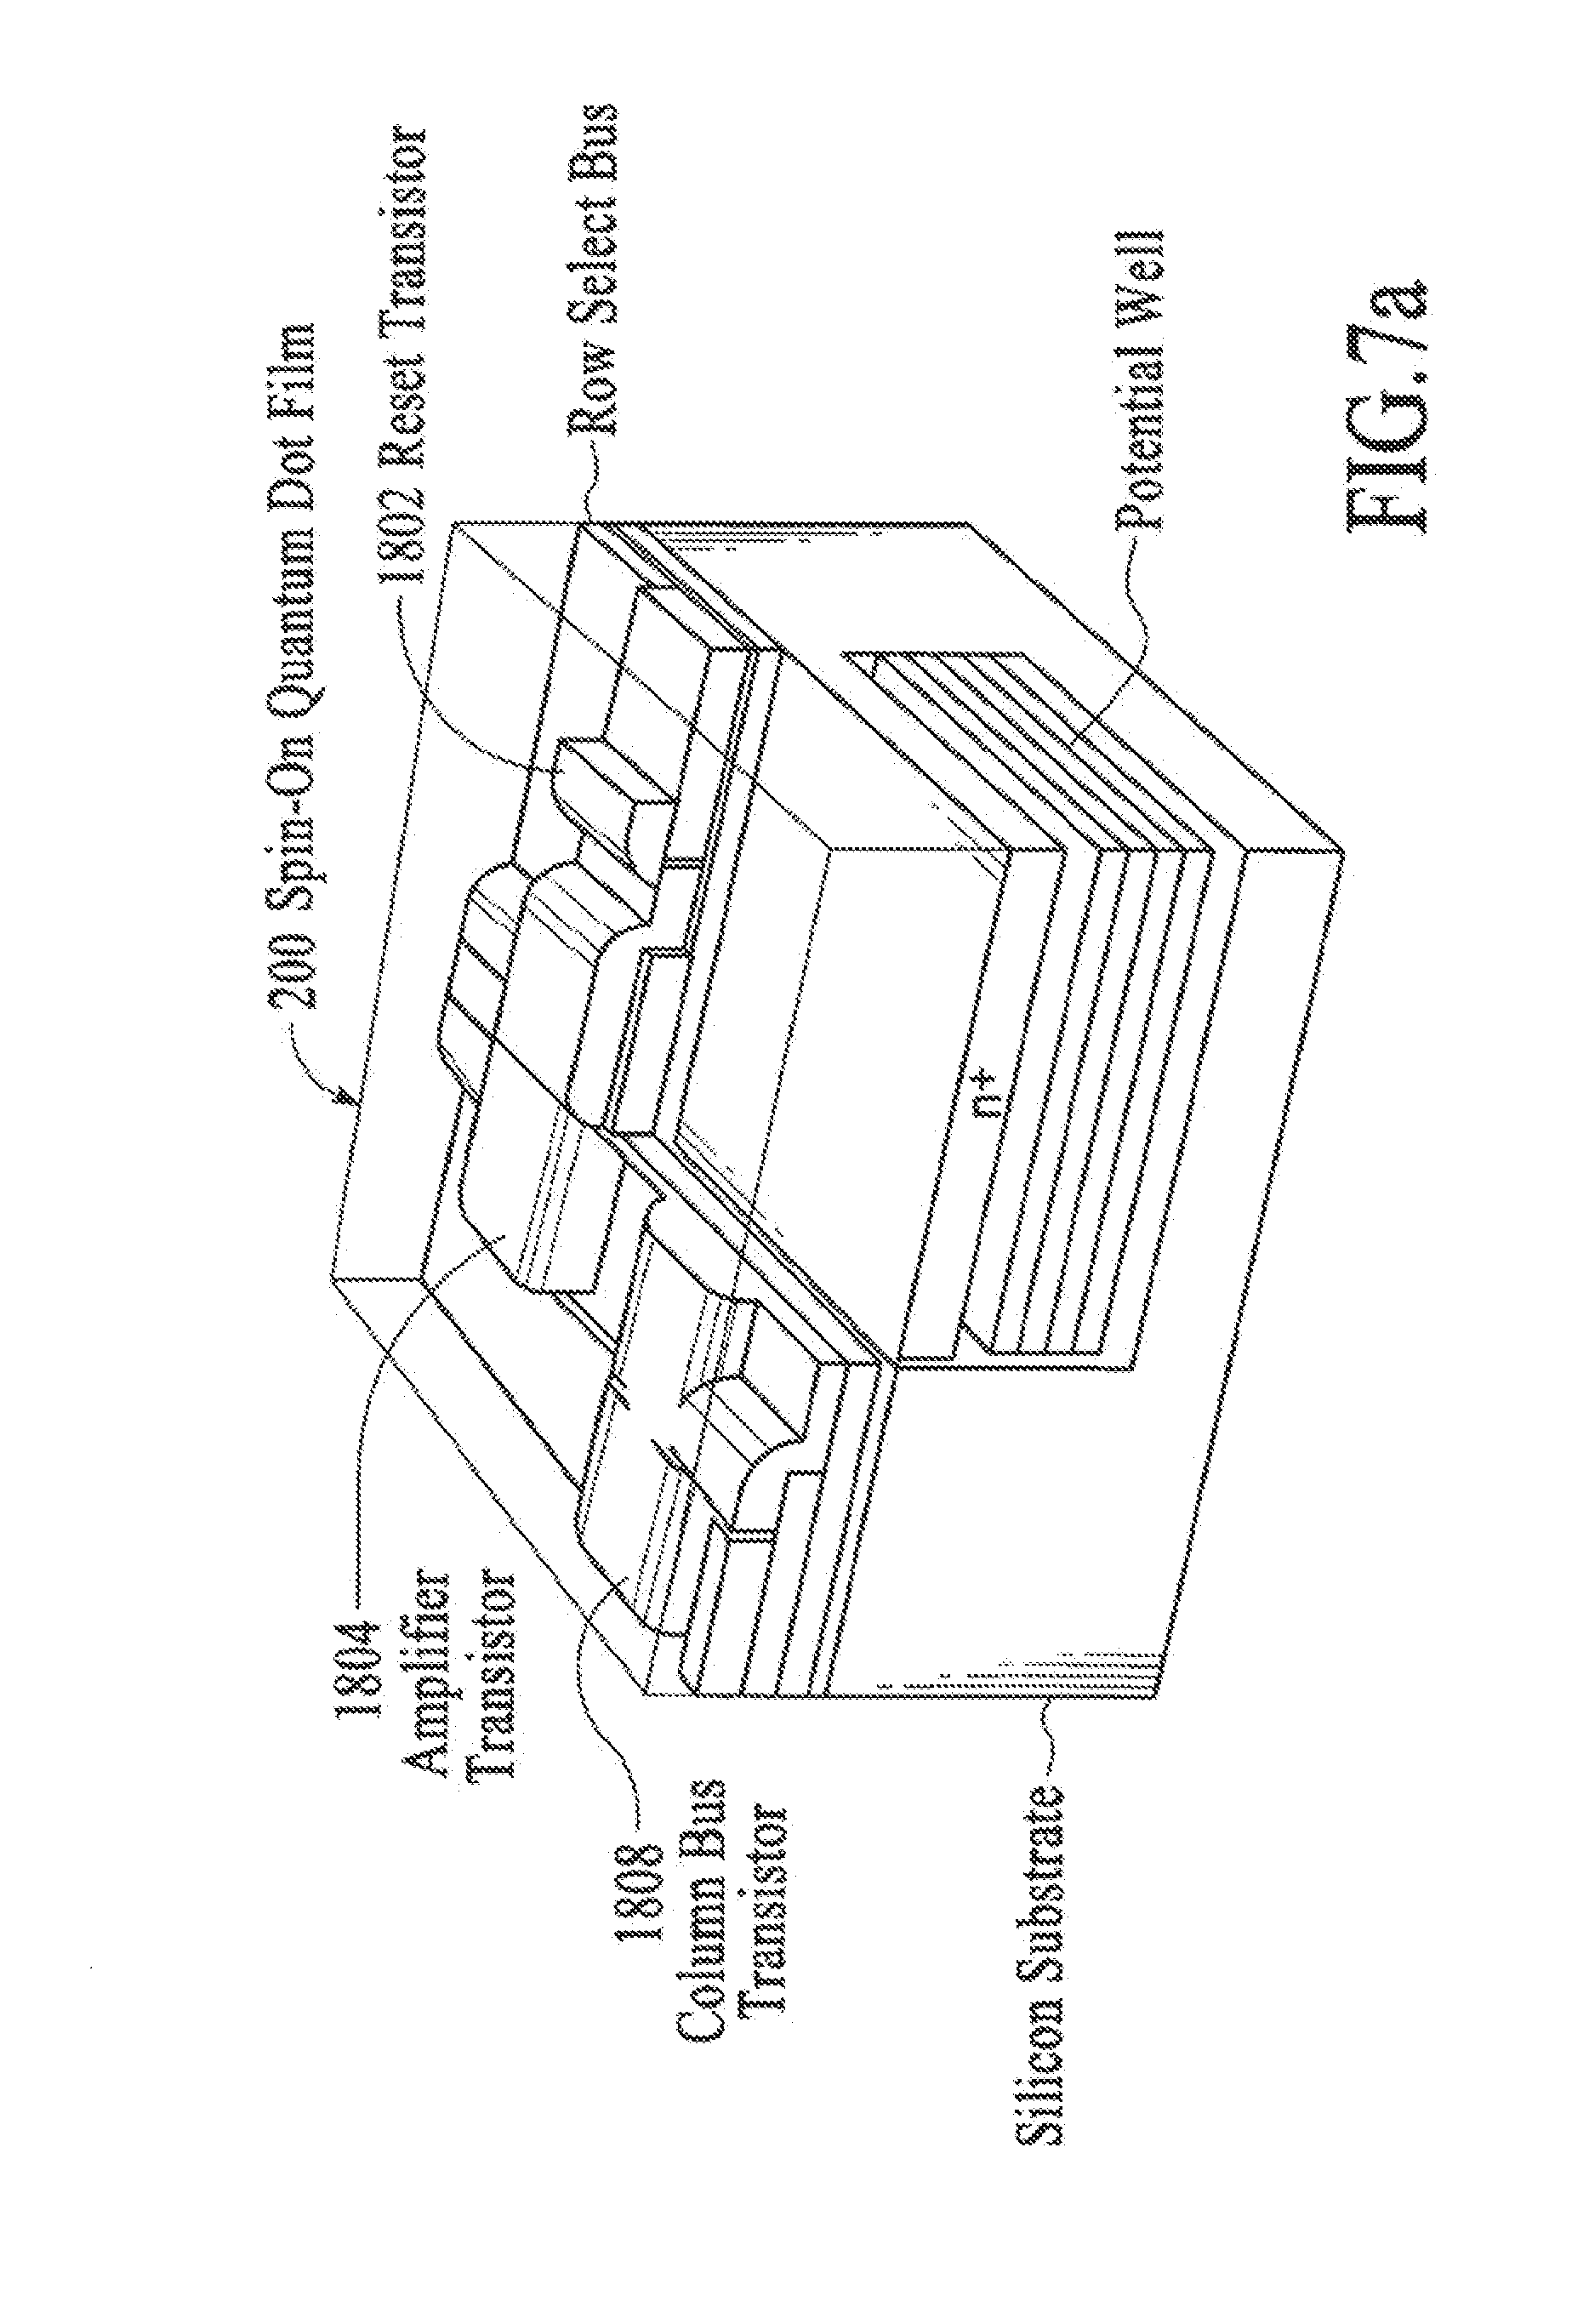 Patent Us 8530940 B2 2g Fuse Box Layouts Merged 77 Cover Map Fuses Diagram Location Images